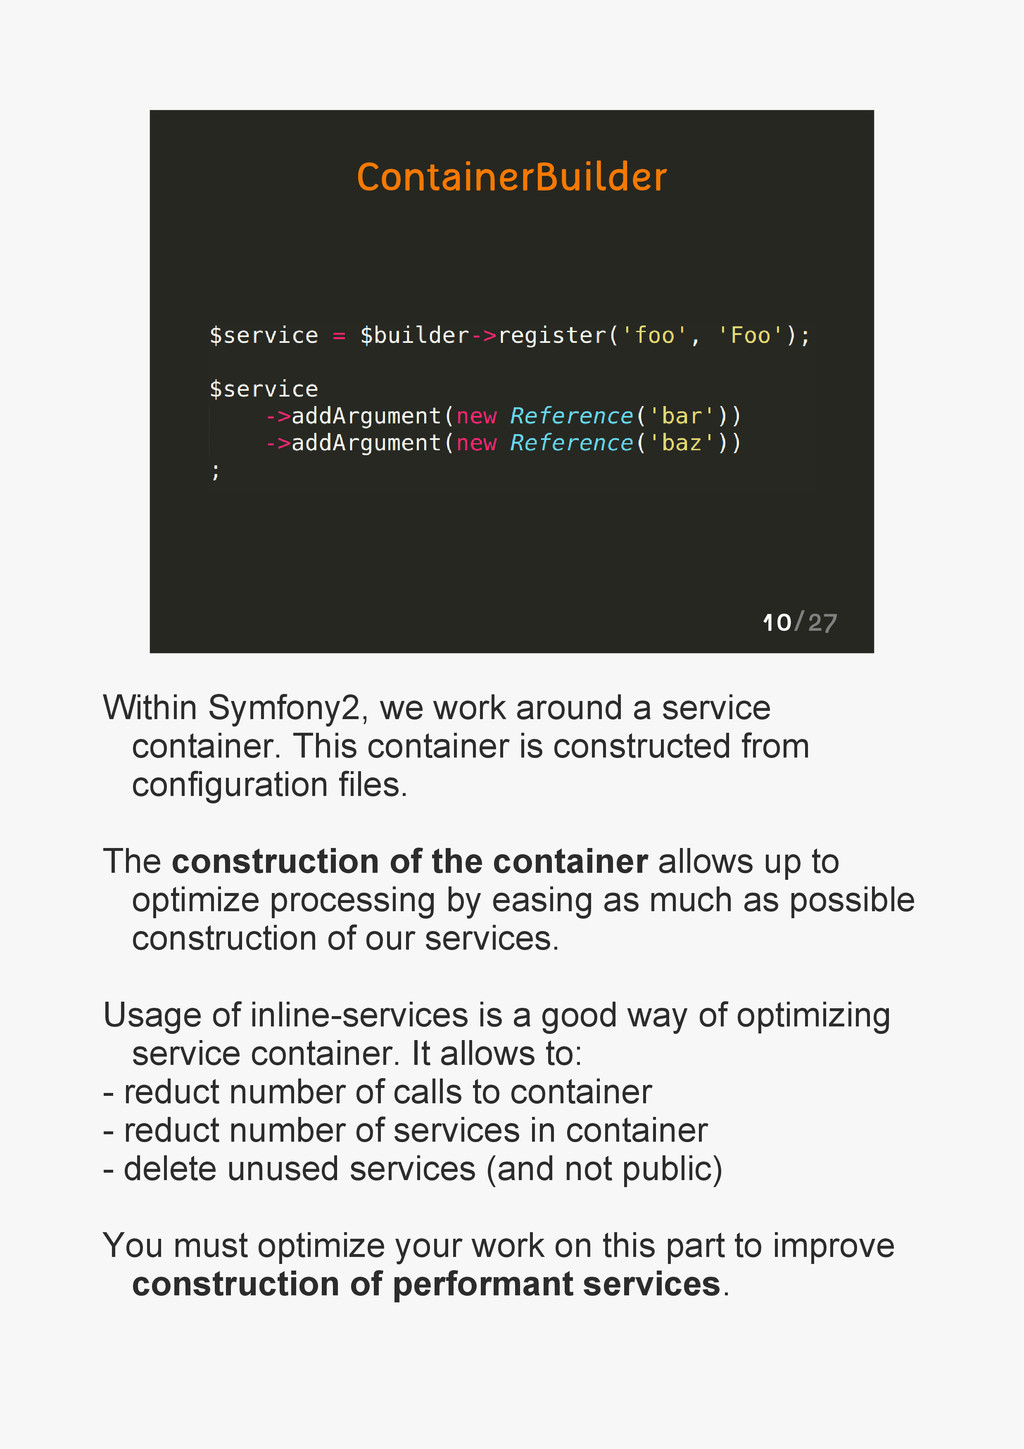 10/27 ContainerBuilder Within Symfony2, we work...